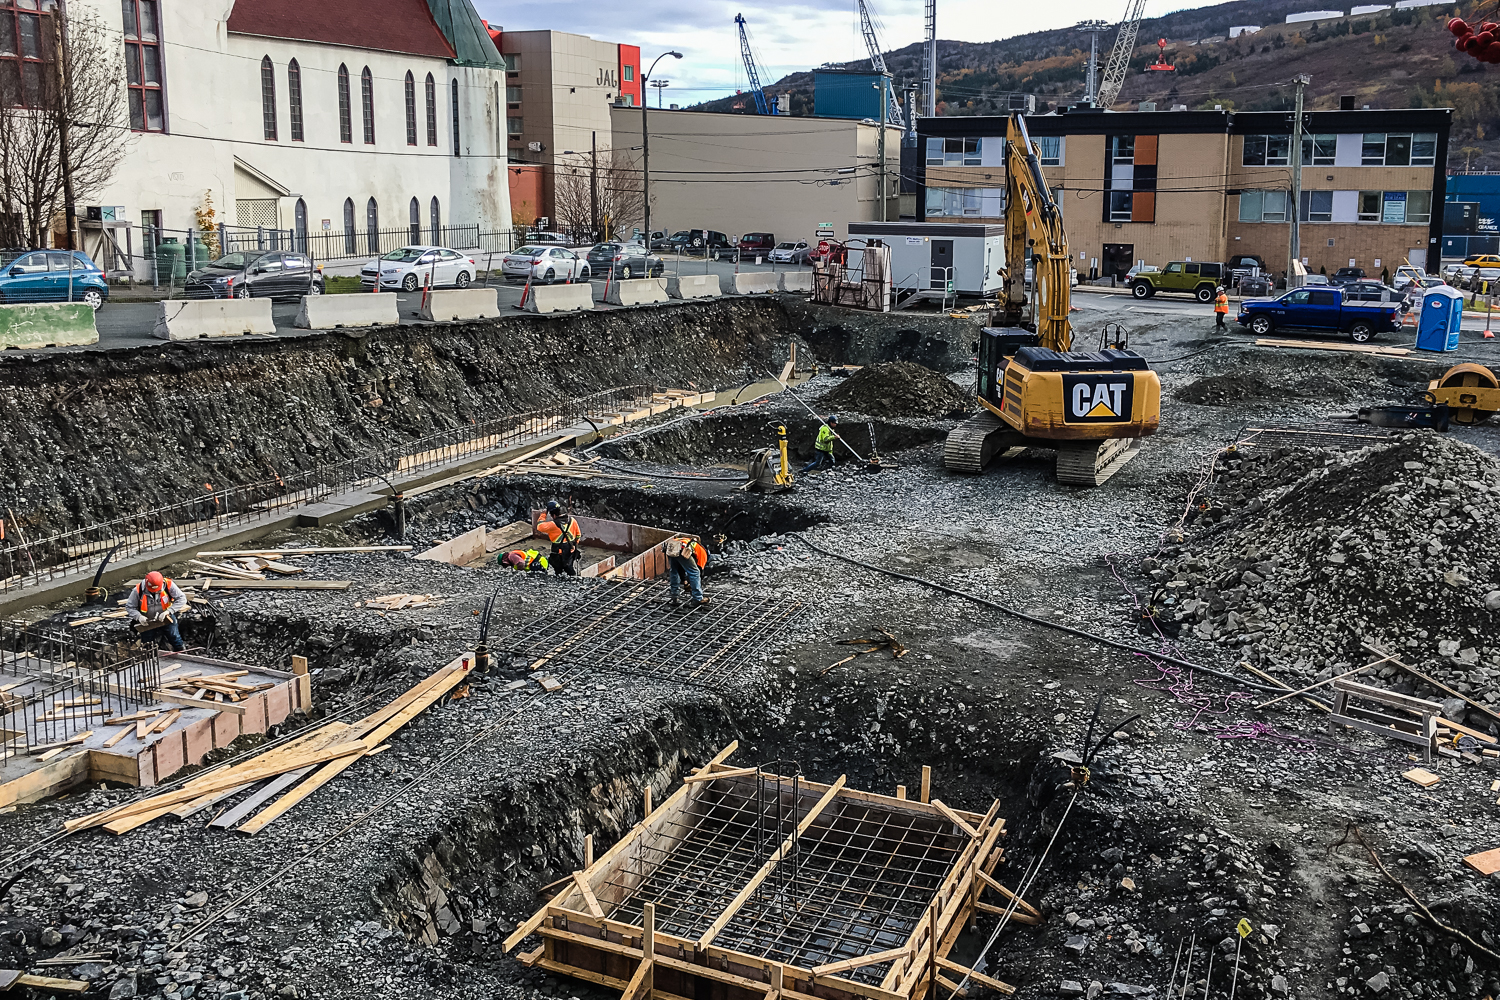 10-24-18 /  Work has begun on the Salvation Army Centre of Hope in downtown St. John's!